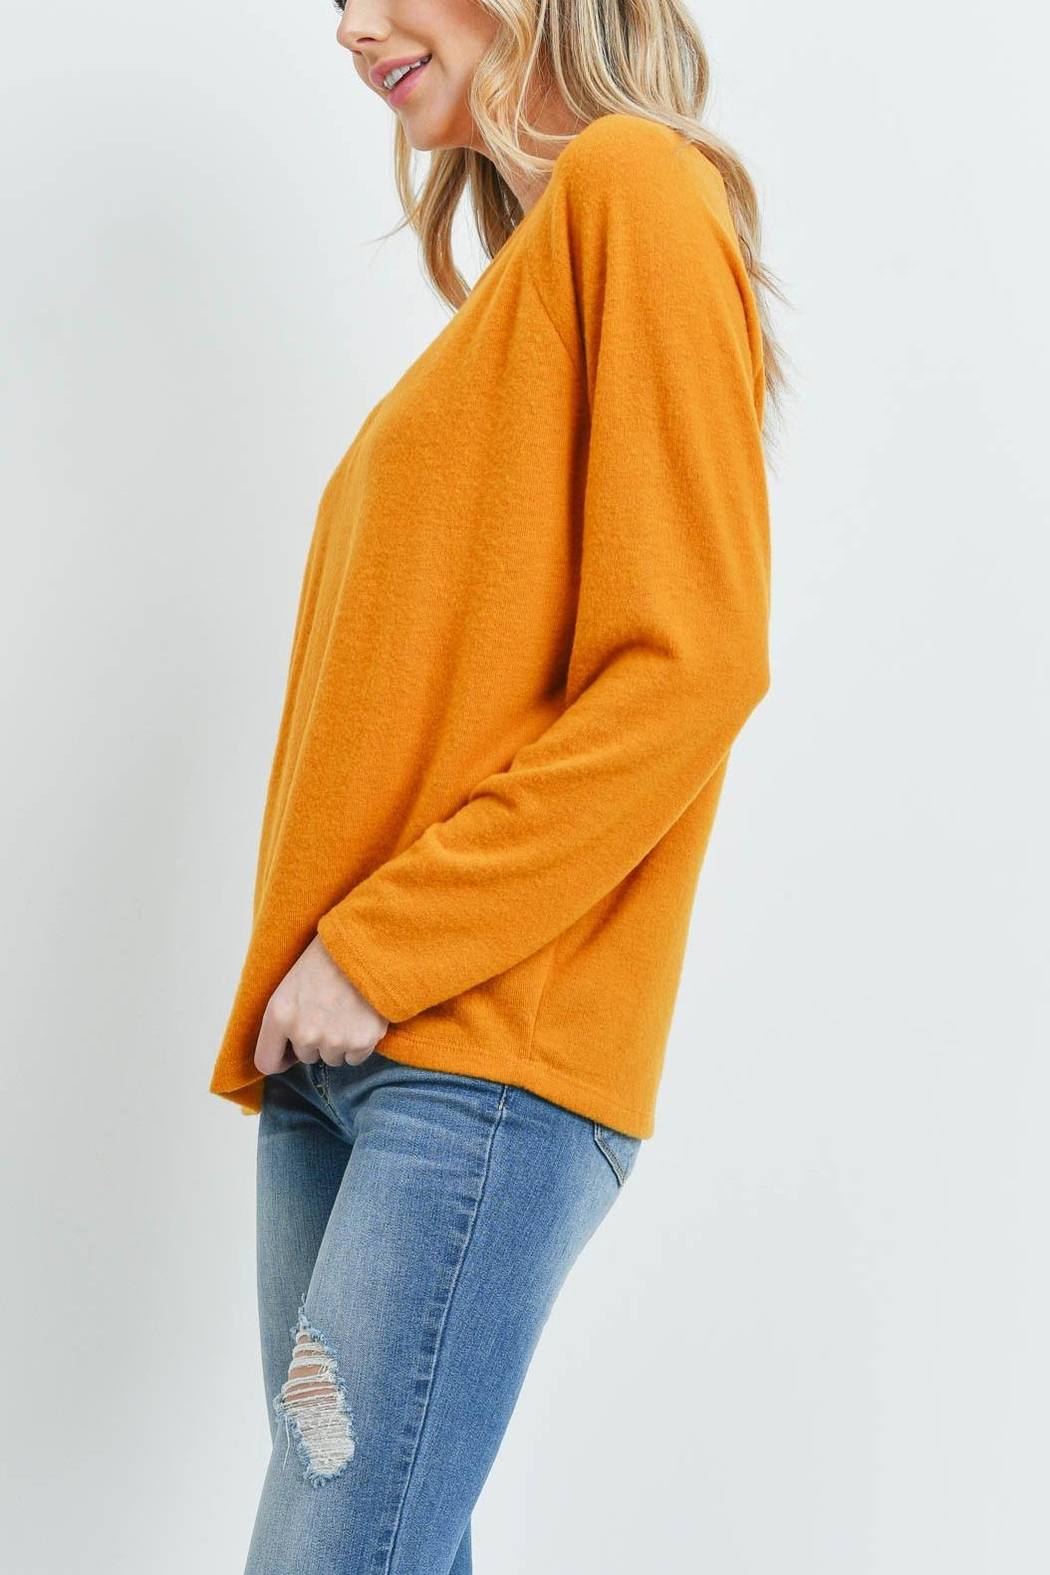 Riah Fashion Long-Sleeved-Solid-Hacci-Top - Front Full Image